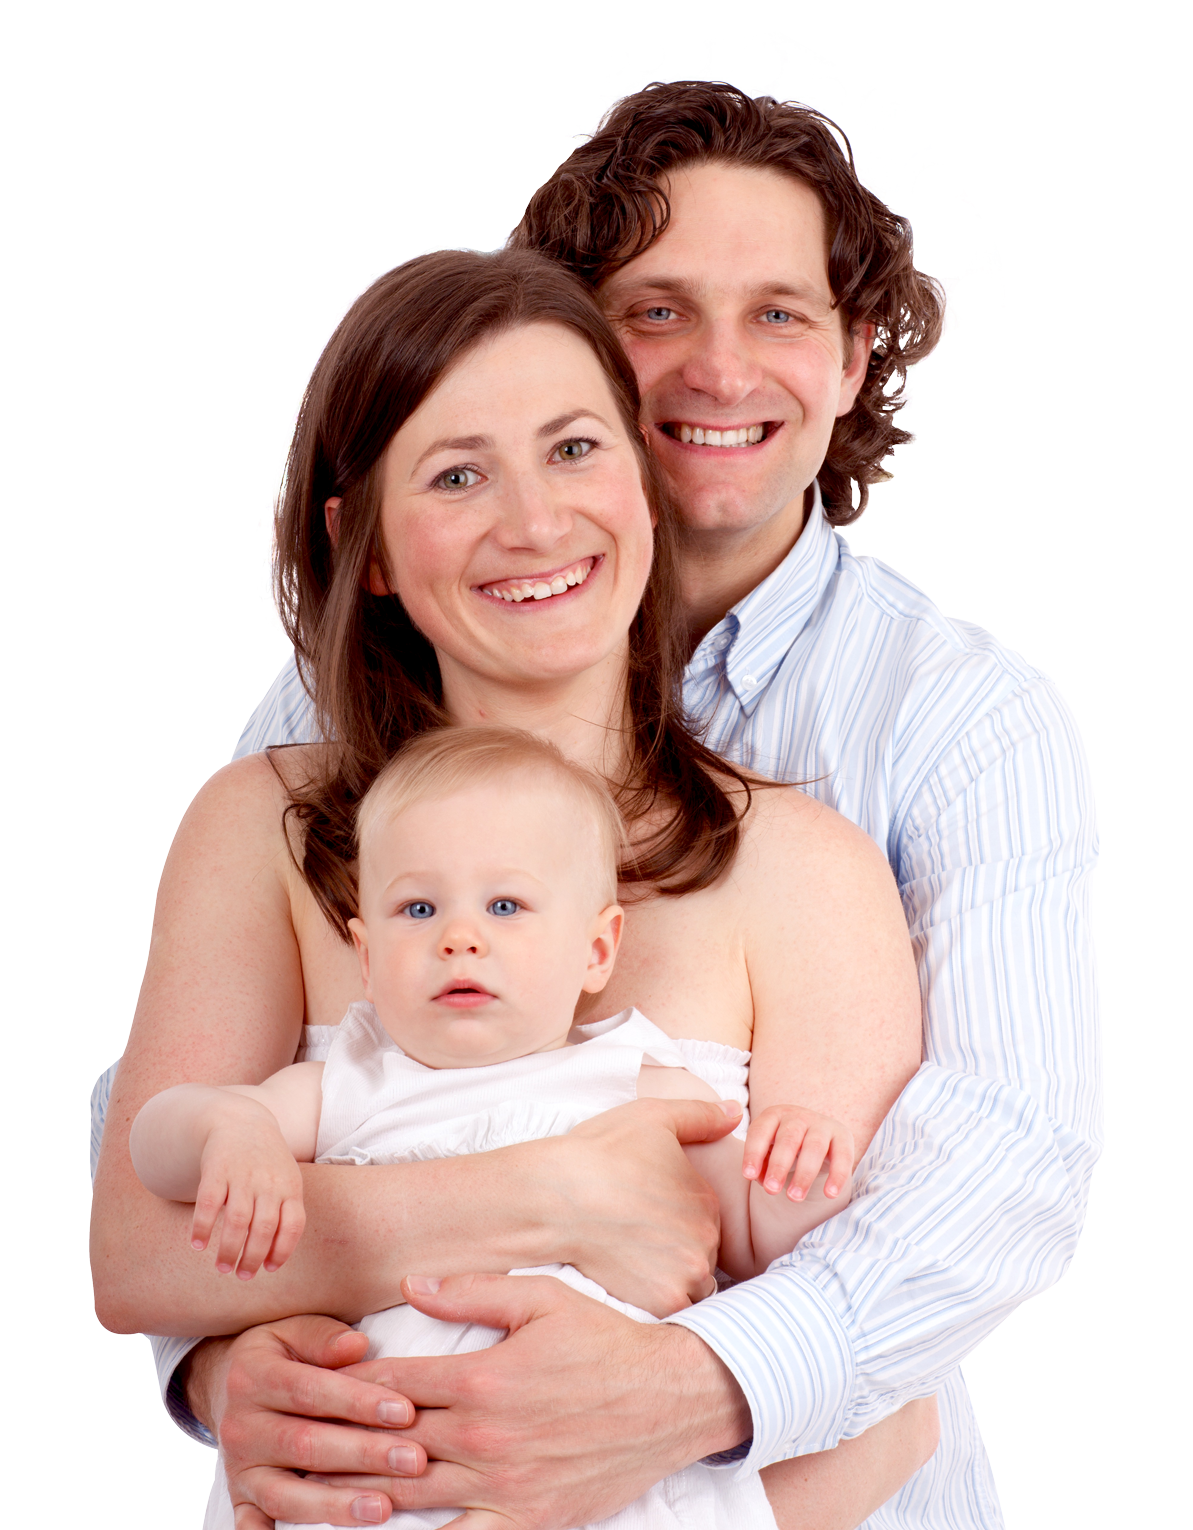 Fitness couple png. With baby image pngpix